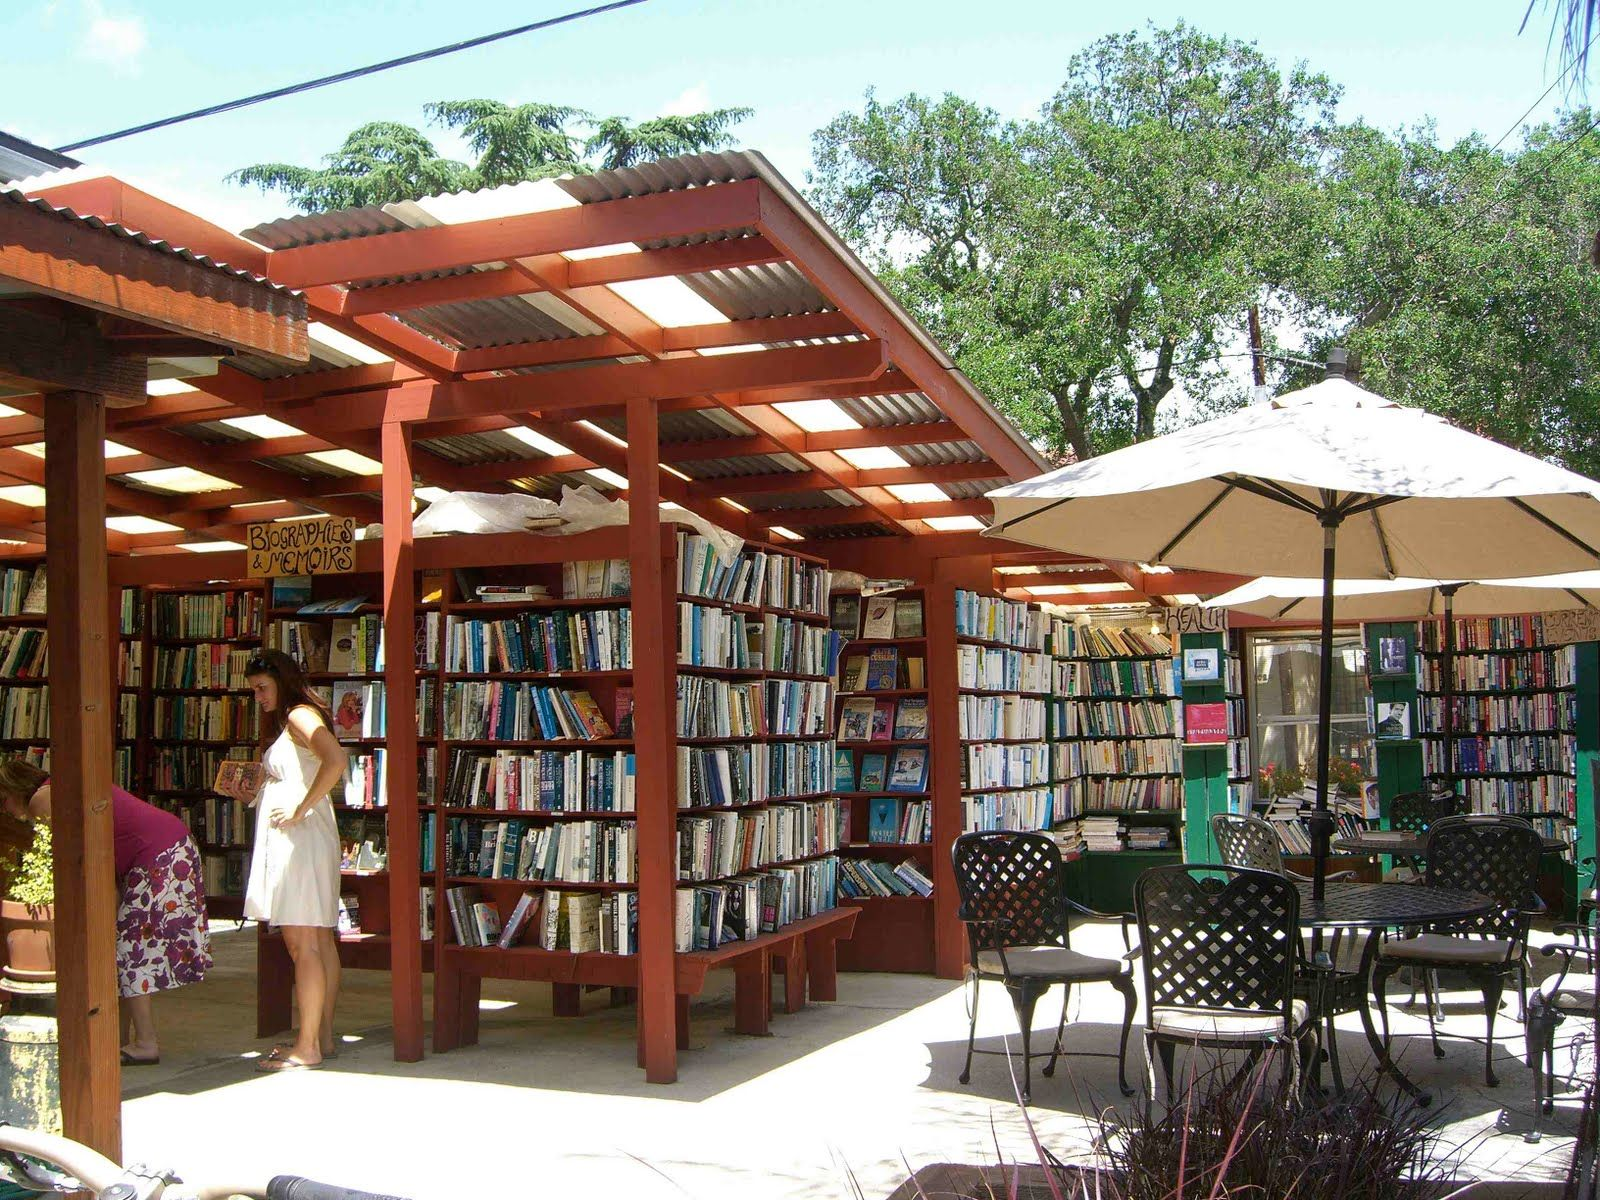 Bart's Books in Ojai...on the list of 20 best outdoor libraries and bookstores from around the world